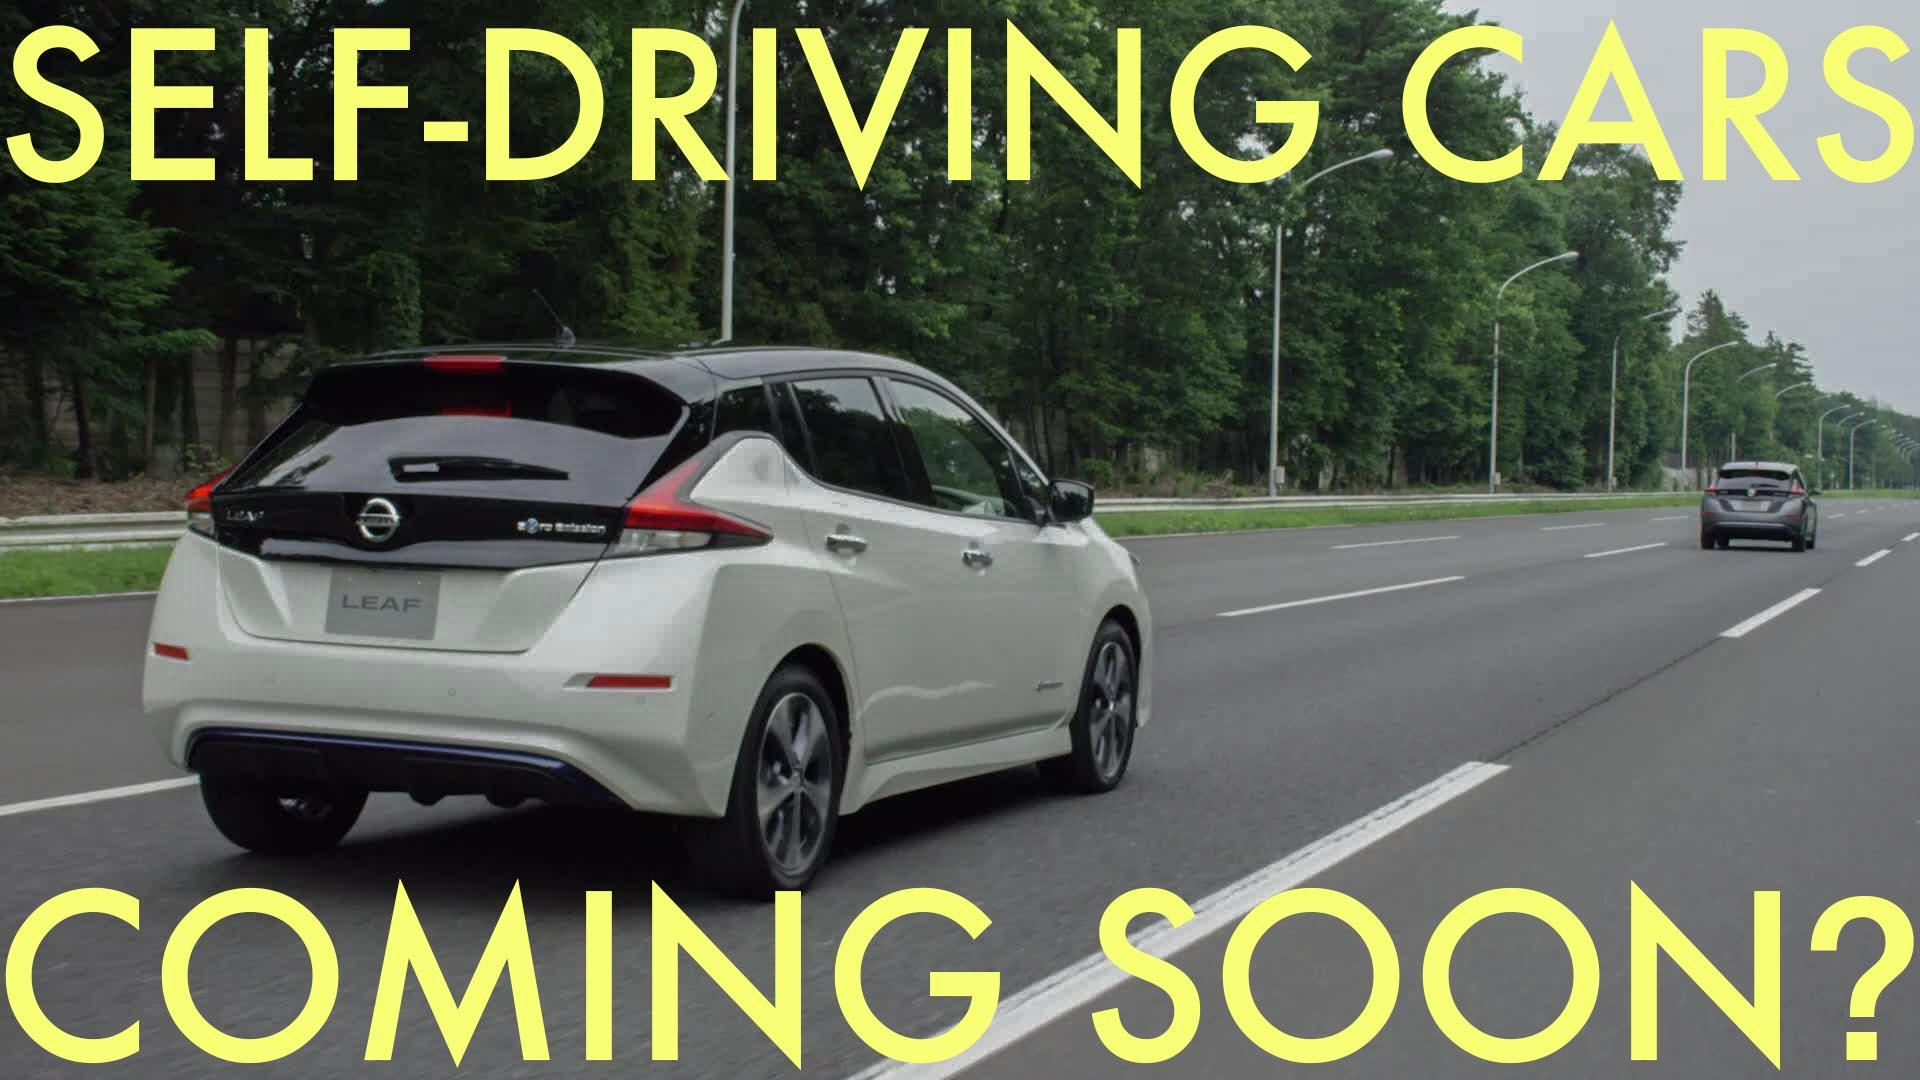 Toyota Volkswagen Gm And More Partner For Self Driving Public Education Autoblog